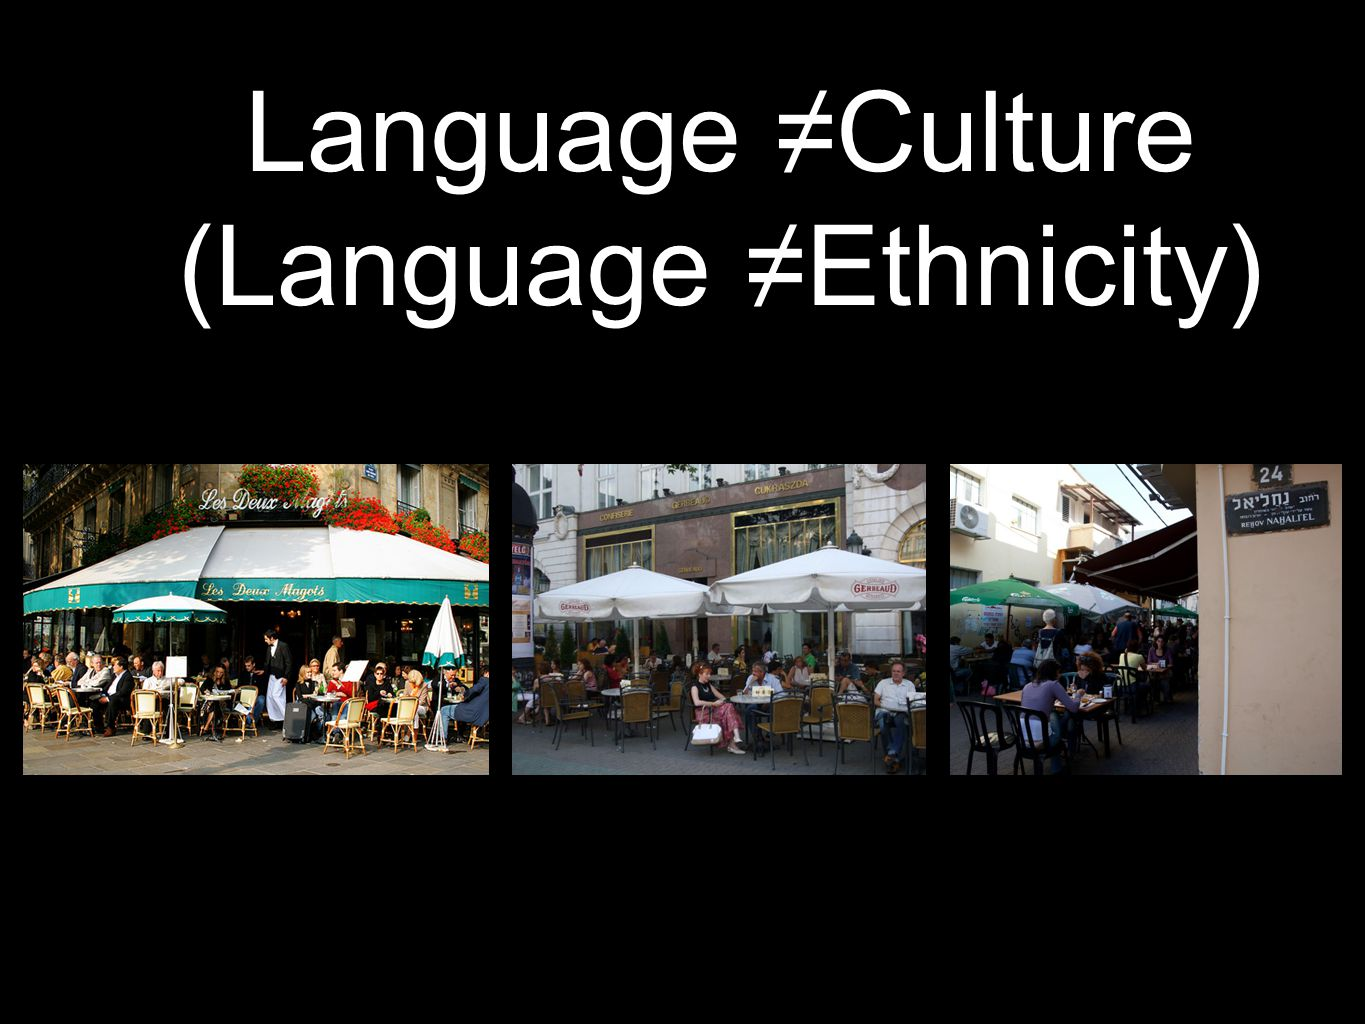 Language ≠Culture (Language ≠Ethnicity)